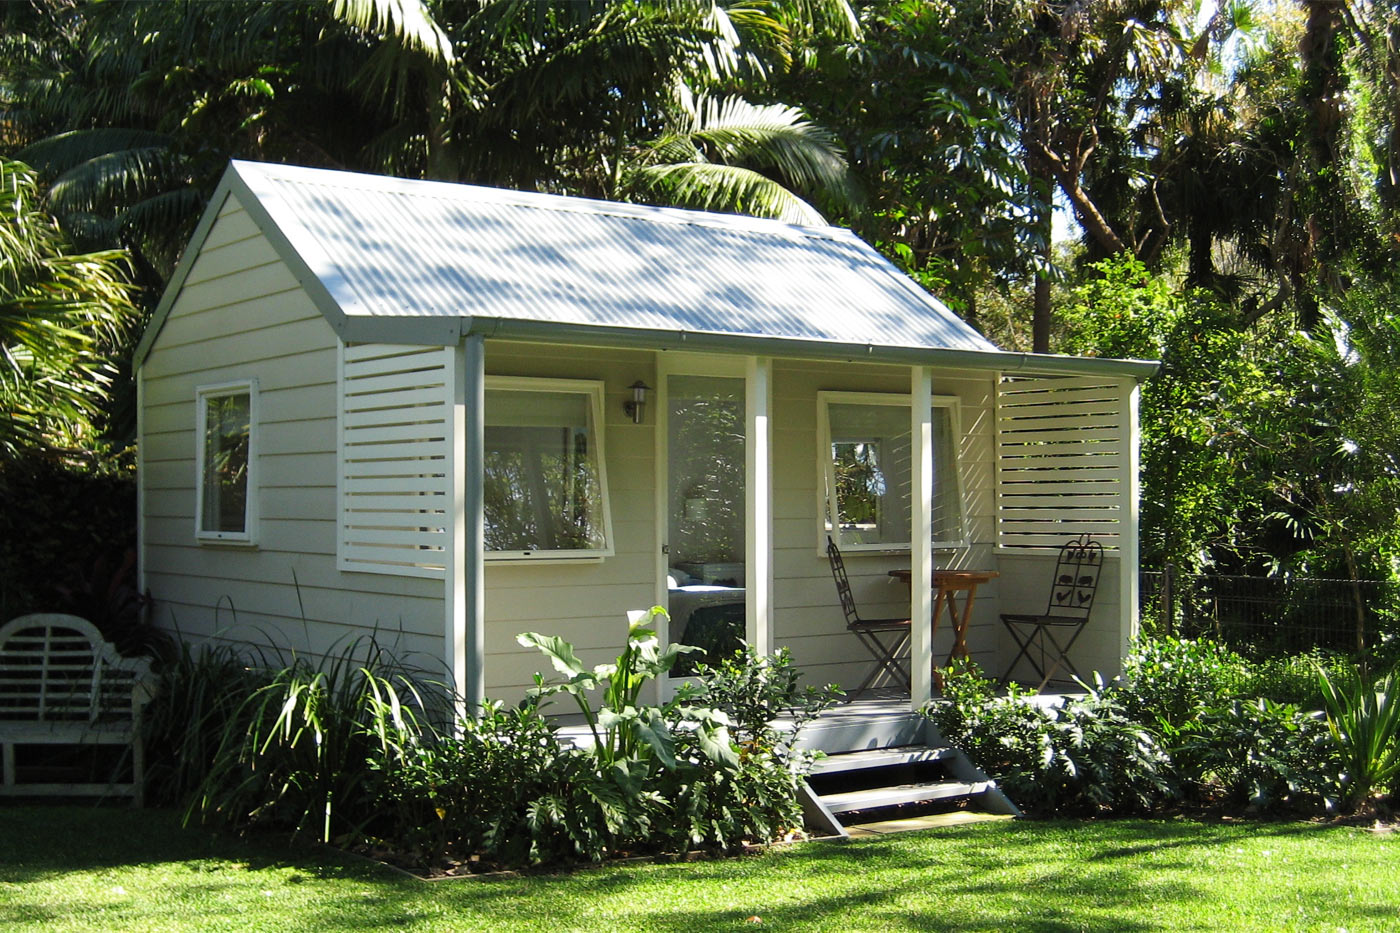 Backyard cottages are the next big thing metropolist for Backyard cabins granny flats